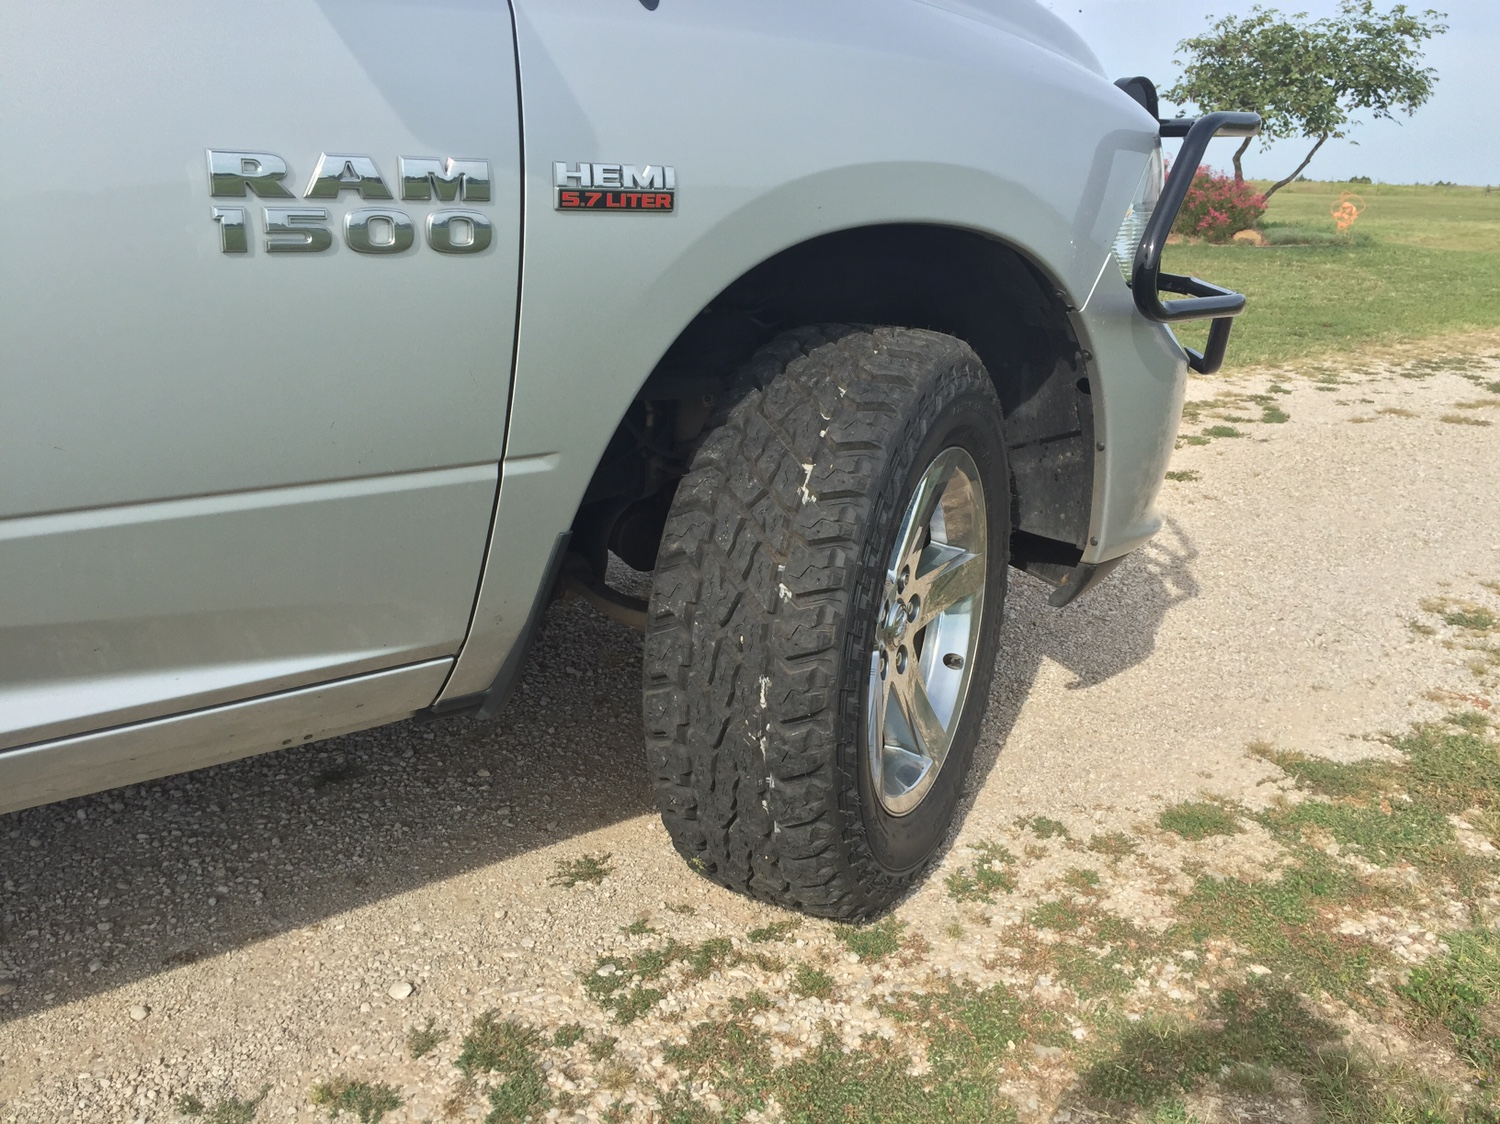 275 60r20 In Inches >> Cooper S/T Maxx 275/65/20 | Page 2 | DODGE RAM FORUM ...